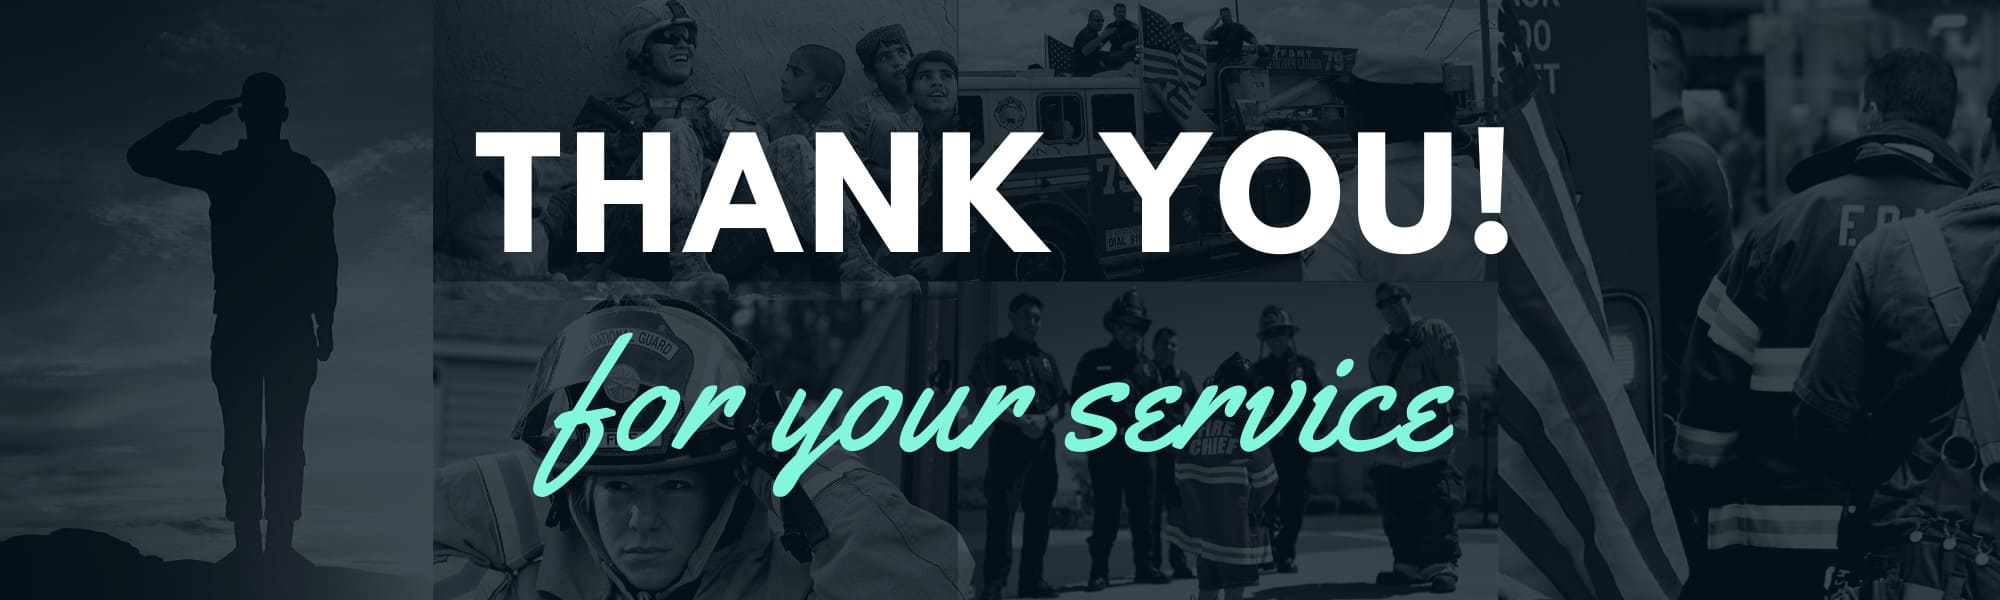 Banner image with military officers, police and firefighter overlay of text that reads Thank you for your service